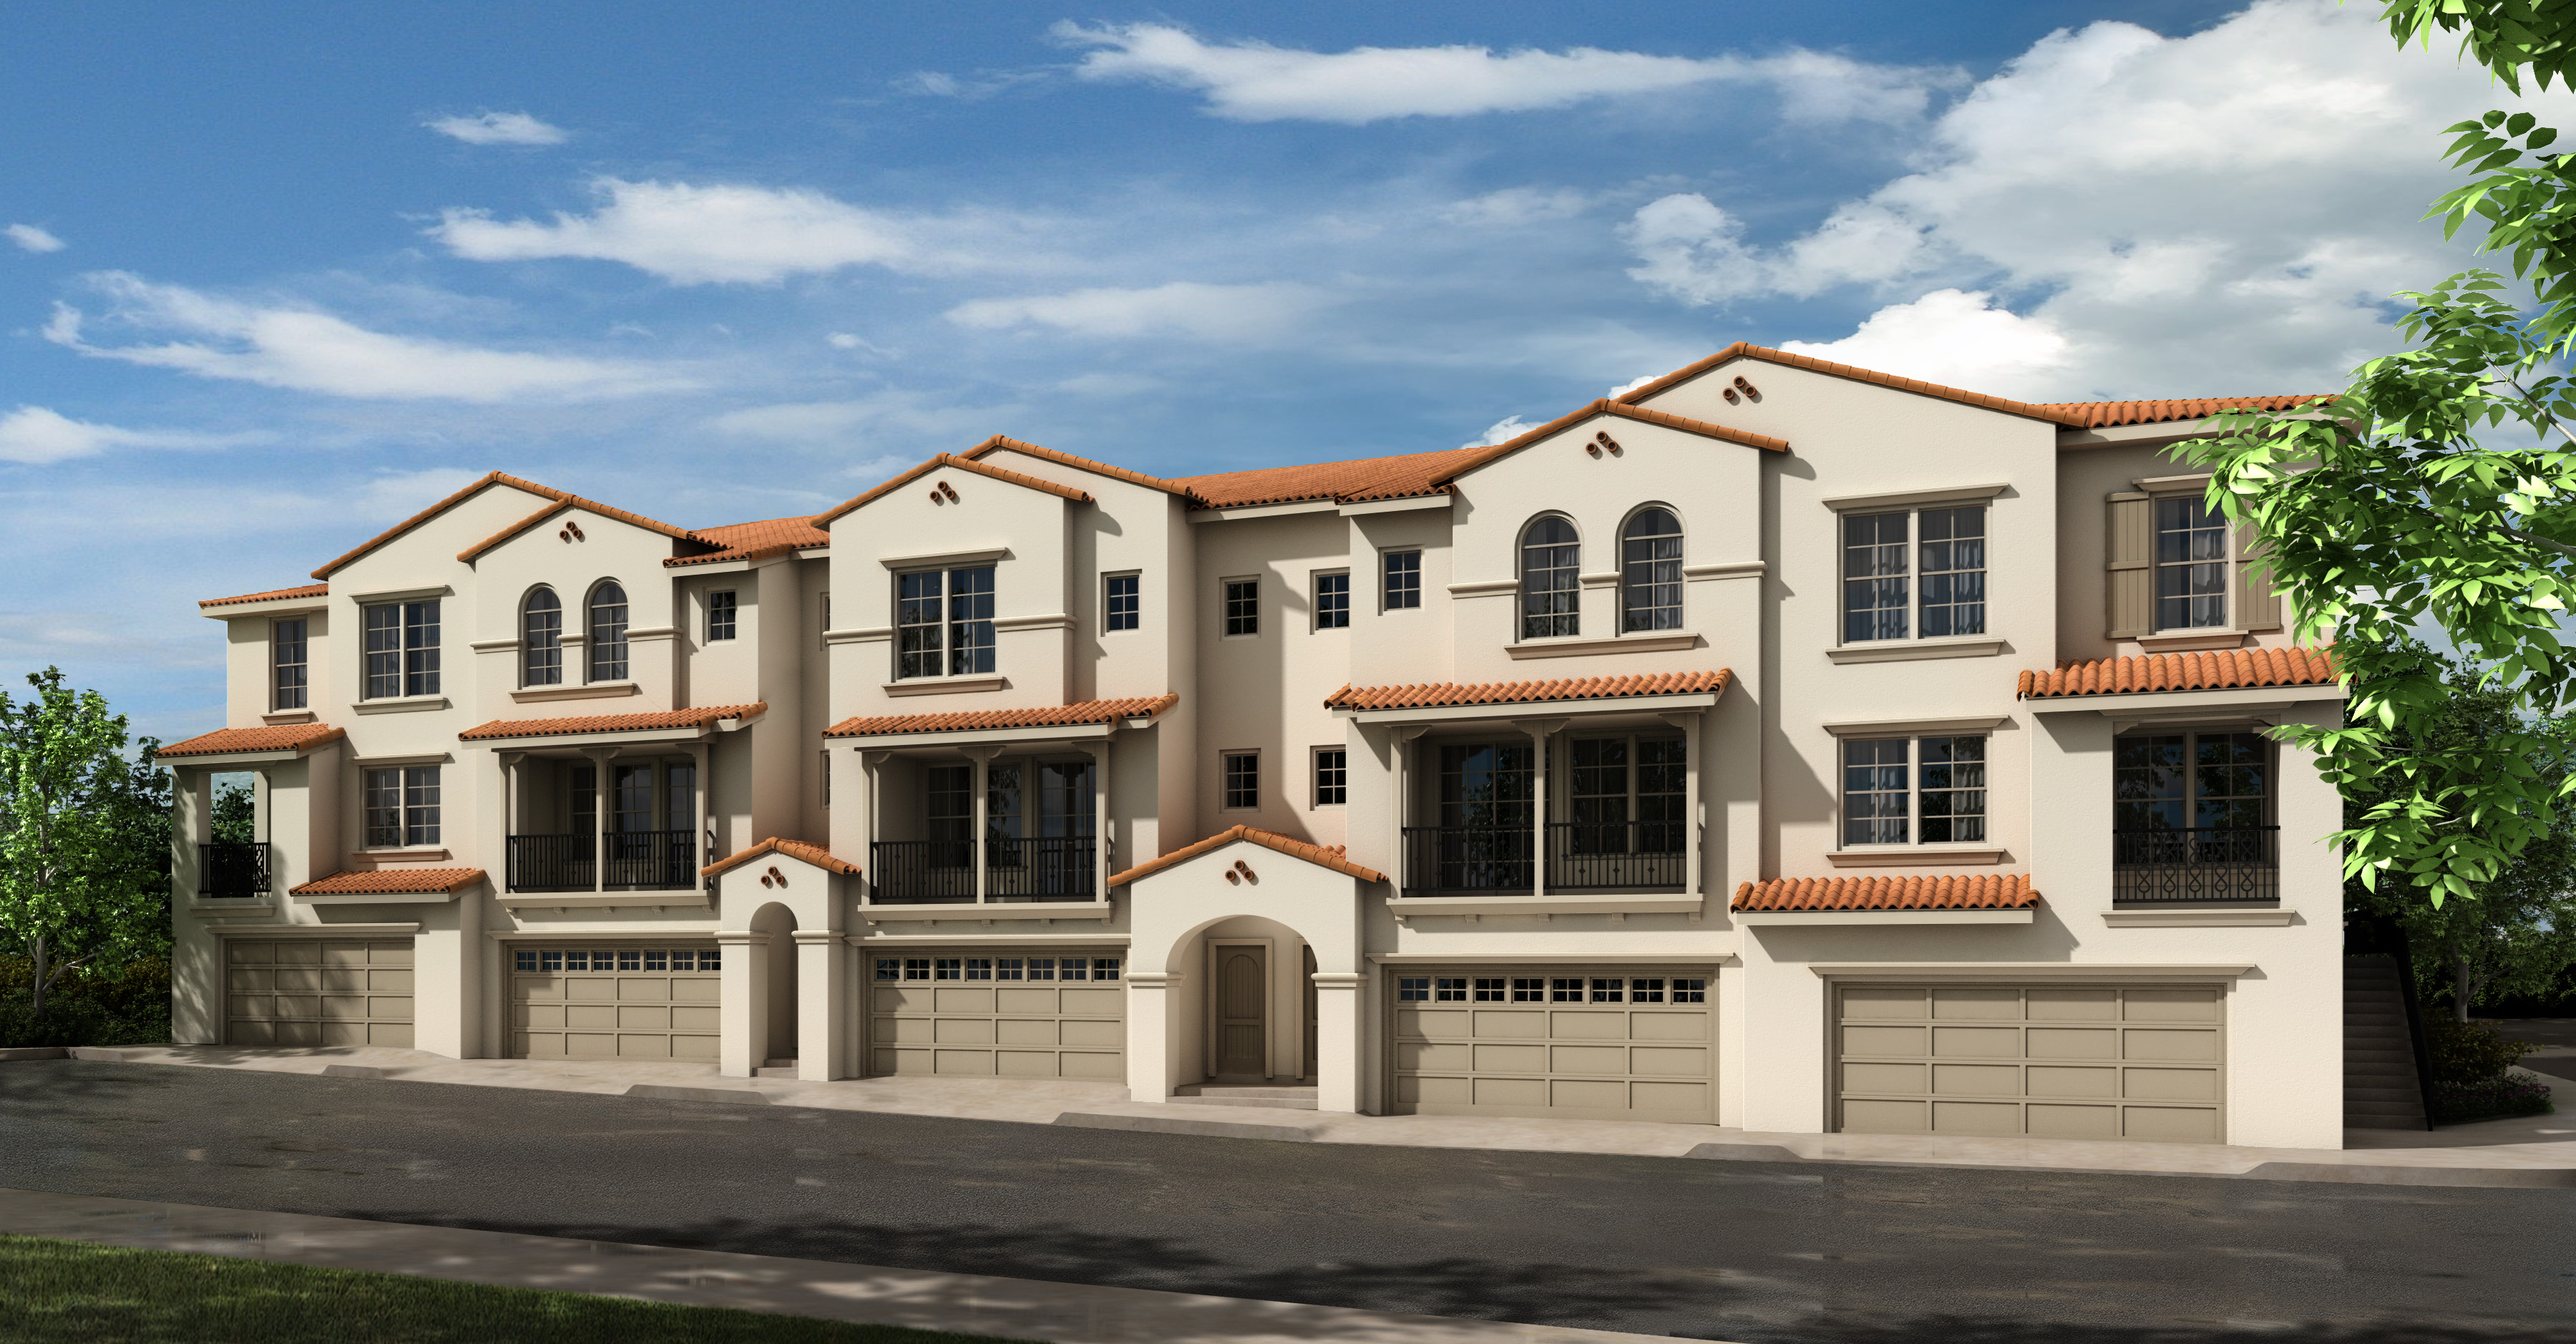 Taylor Morrisons Southern California Division Eyes Growth In 2012 Debuting Three New Home